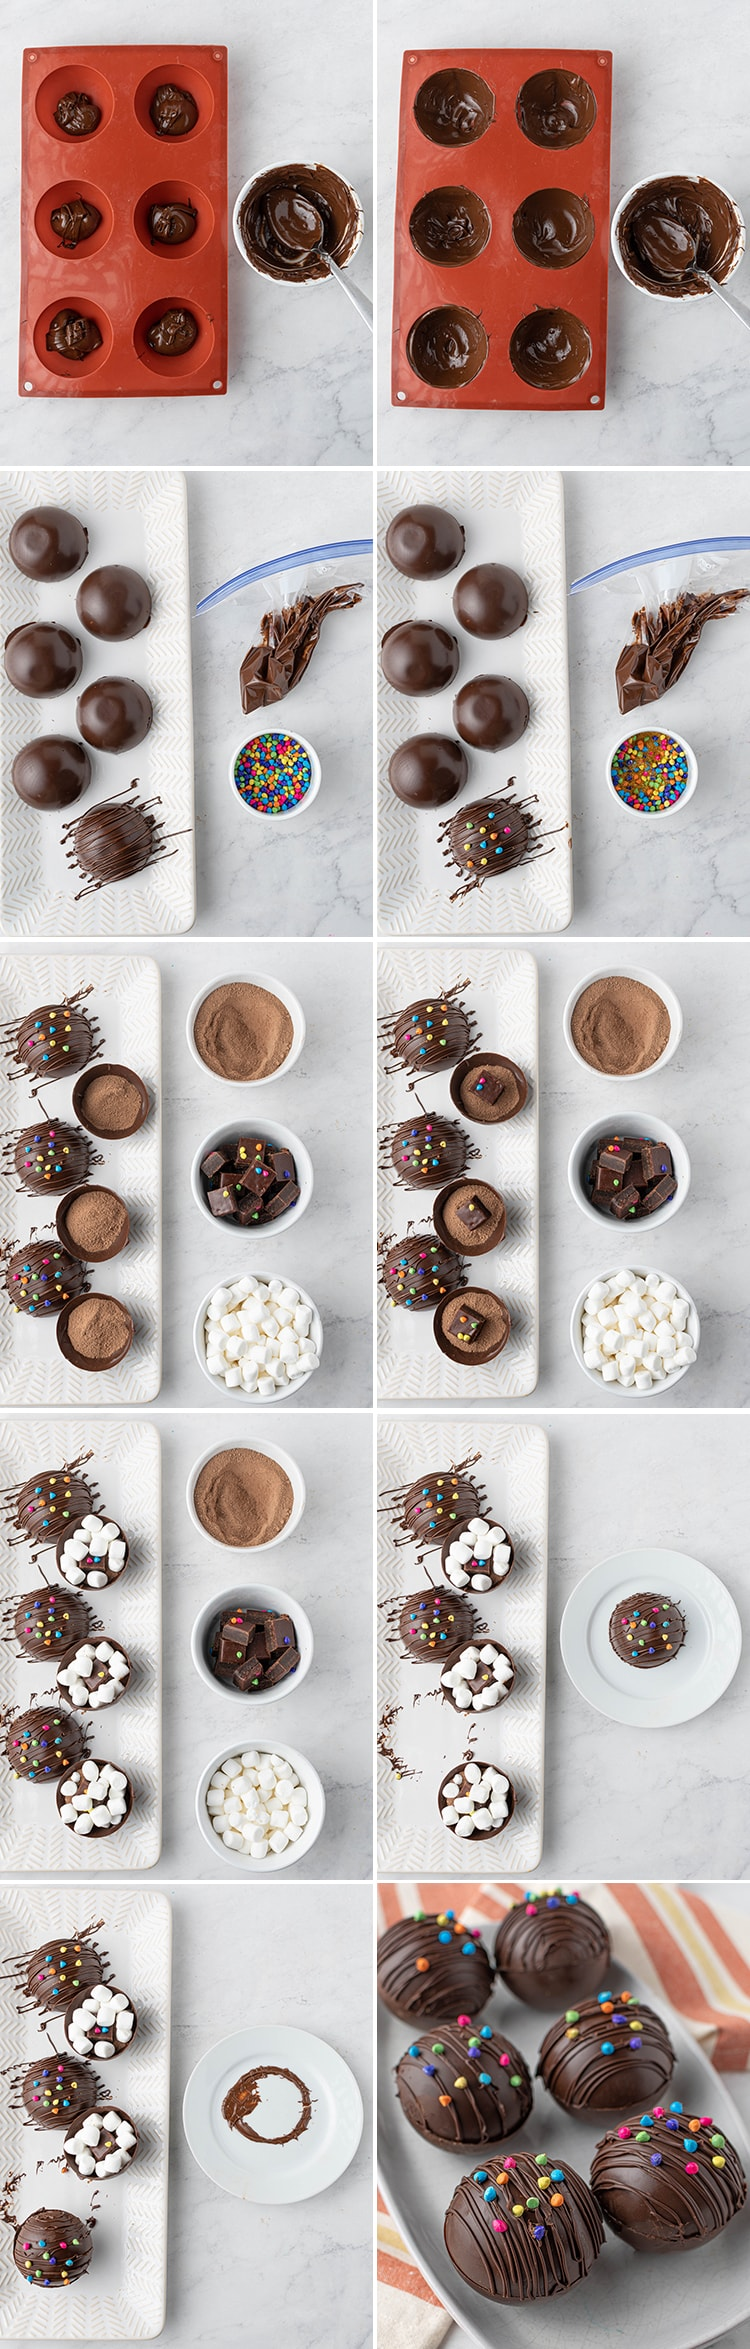 10 Step by step photos on how to make cosmic brownie hot chocolate bombs. Showing the chocolate being coated in the silicone molds. Then chocolate being drizzled on the top, and chocolate rainbow chips are placed on top. Then the bottom half is filled with cocoa, a cosmic brownie piece, and mini marshmallows. Then the top piece is melted on the edges on a warm plate and placed on top to help them seal. The last photo is the 6 finished hot cocoa bombs on a plate.